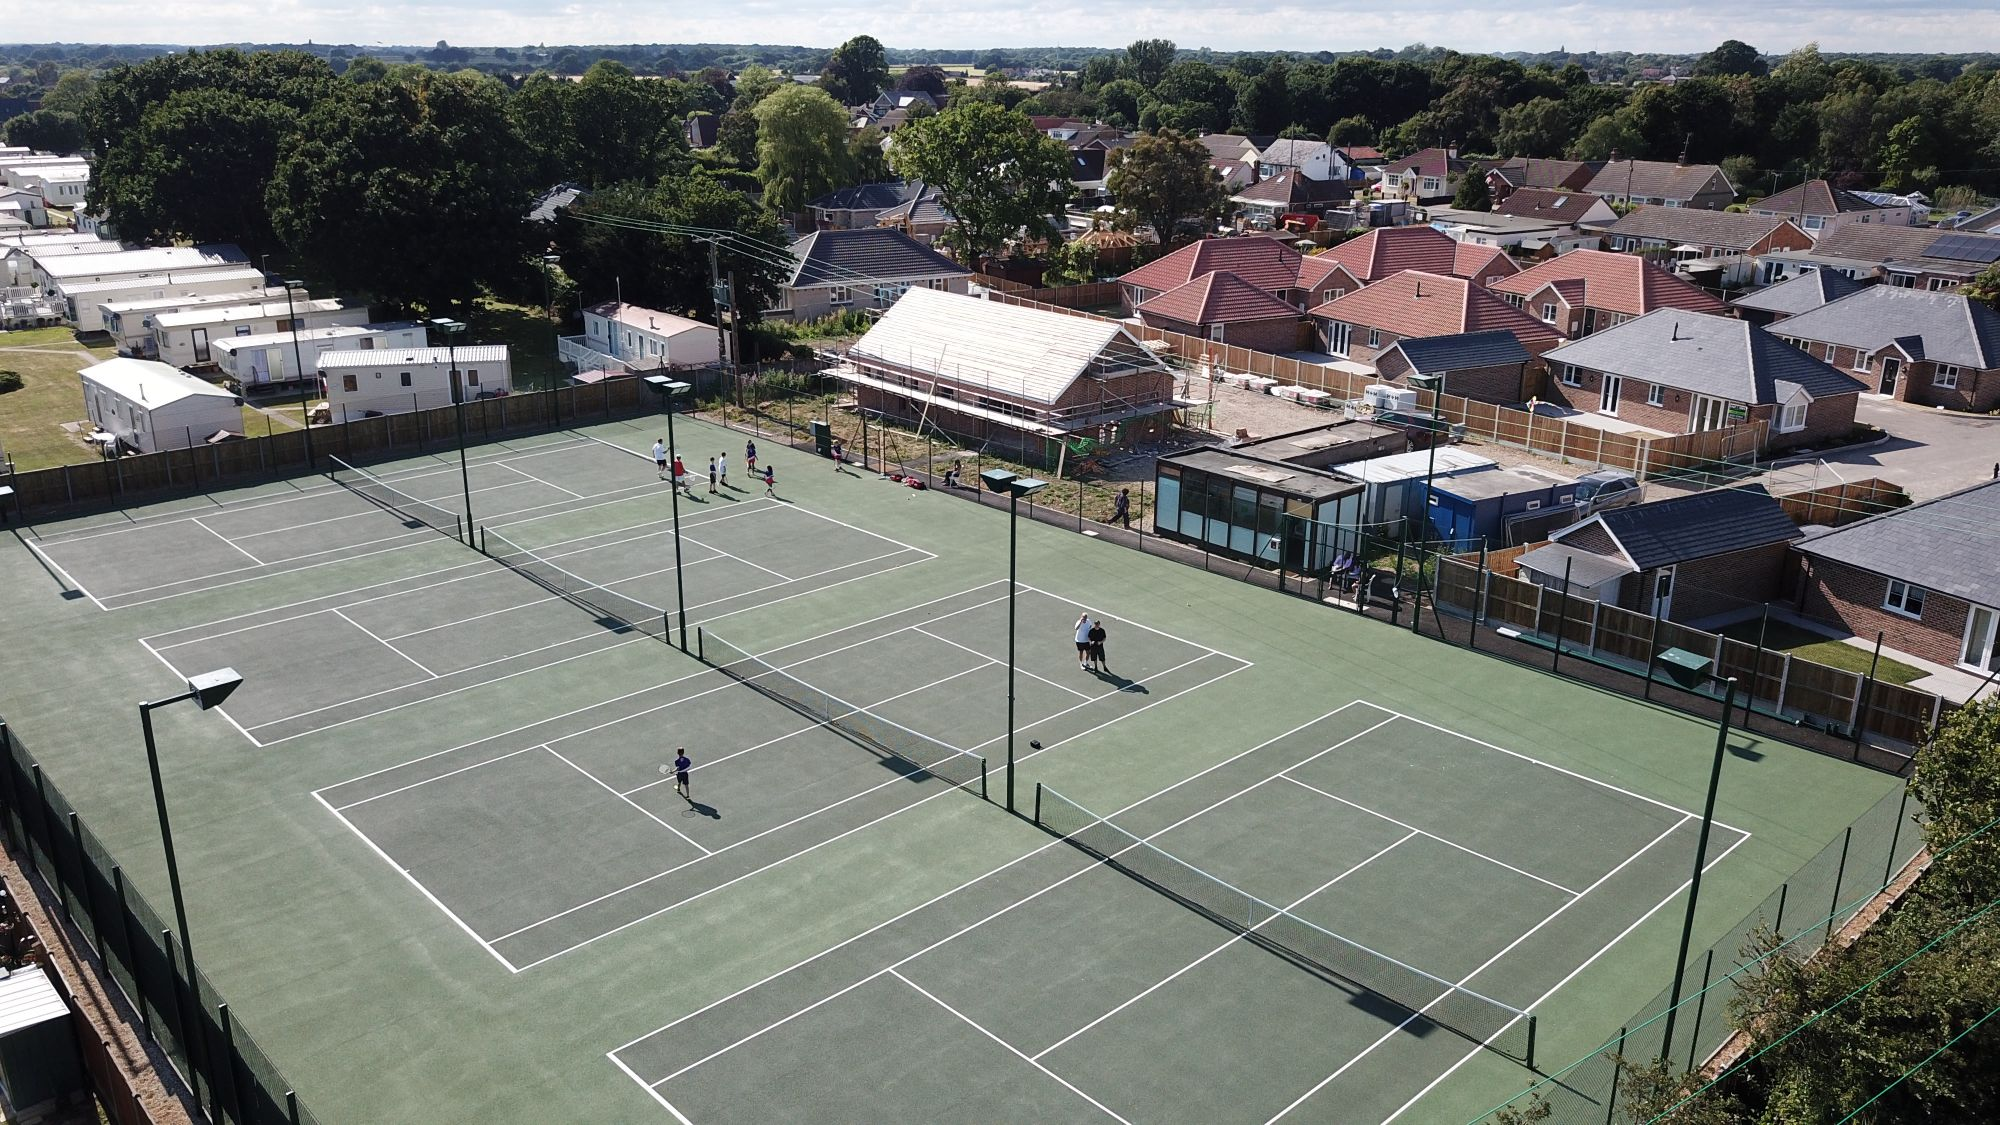 Modern asphalt courts are an ideal option for clubs requiring minimal tennis court maintenance